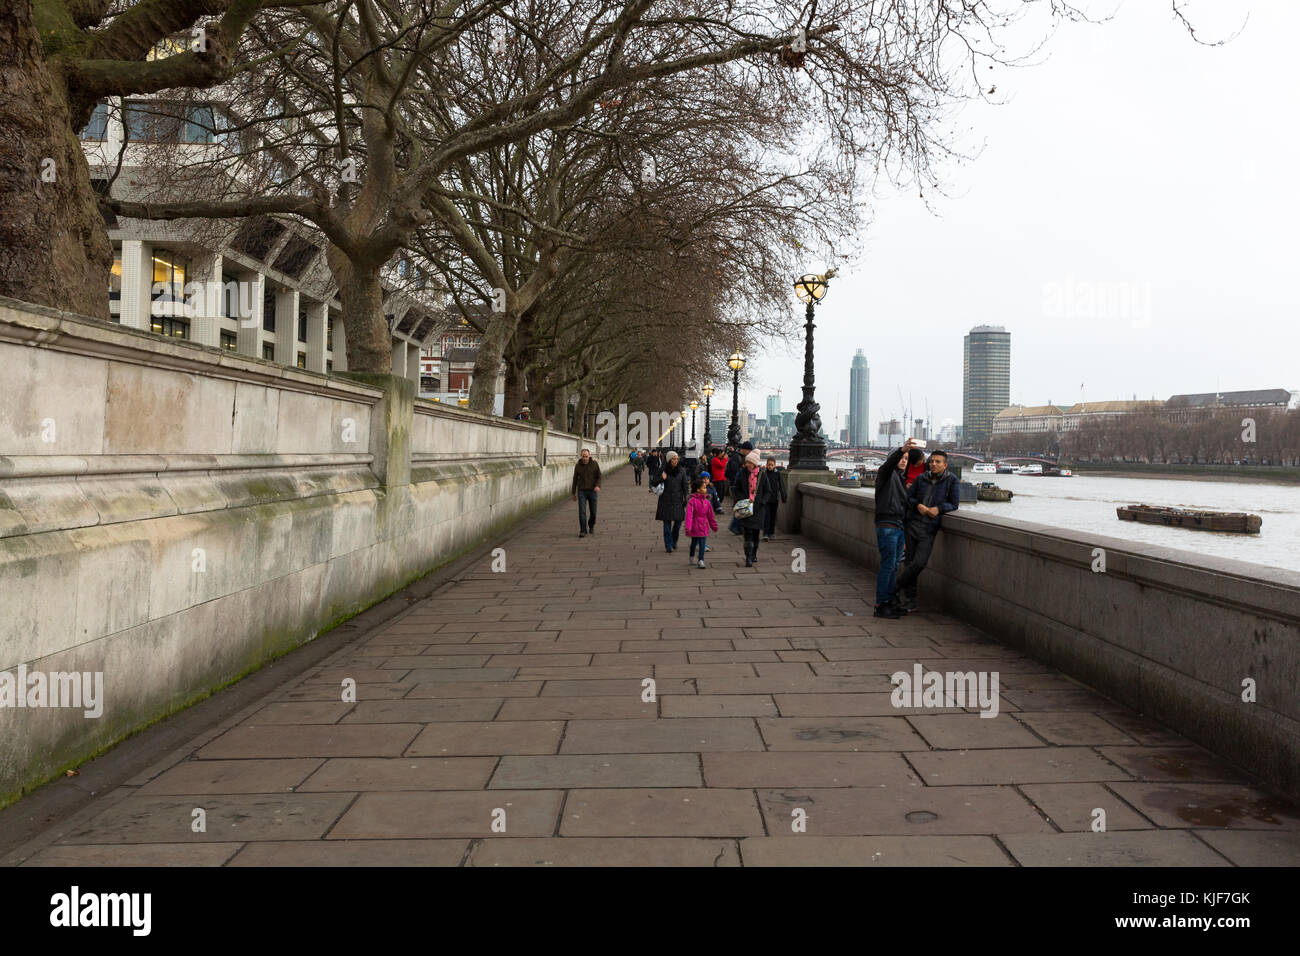 Tree-lined pathway alongside the River Thames - London, UK - Stock Image